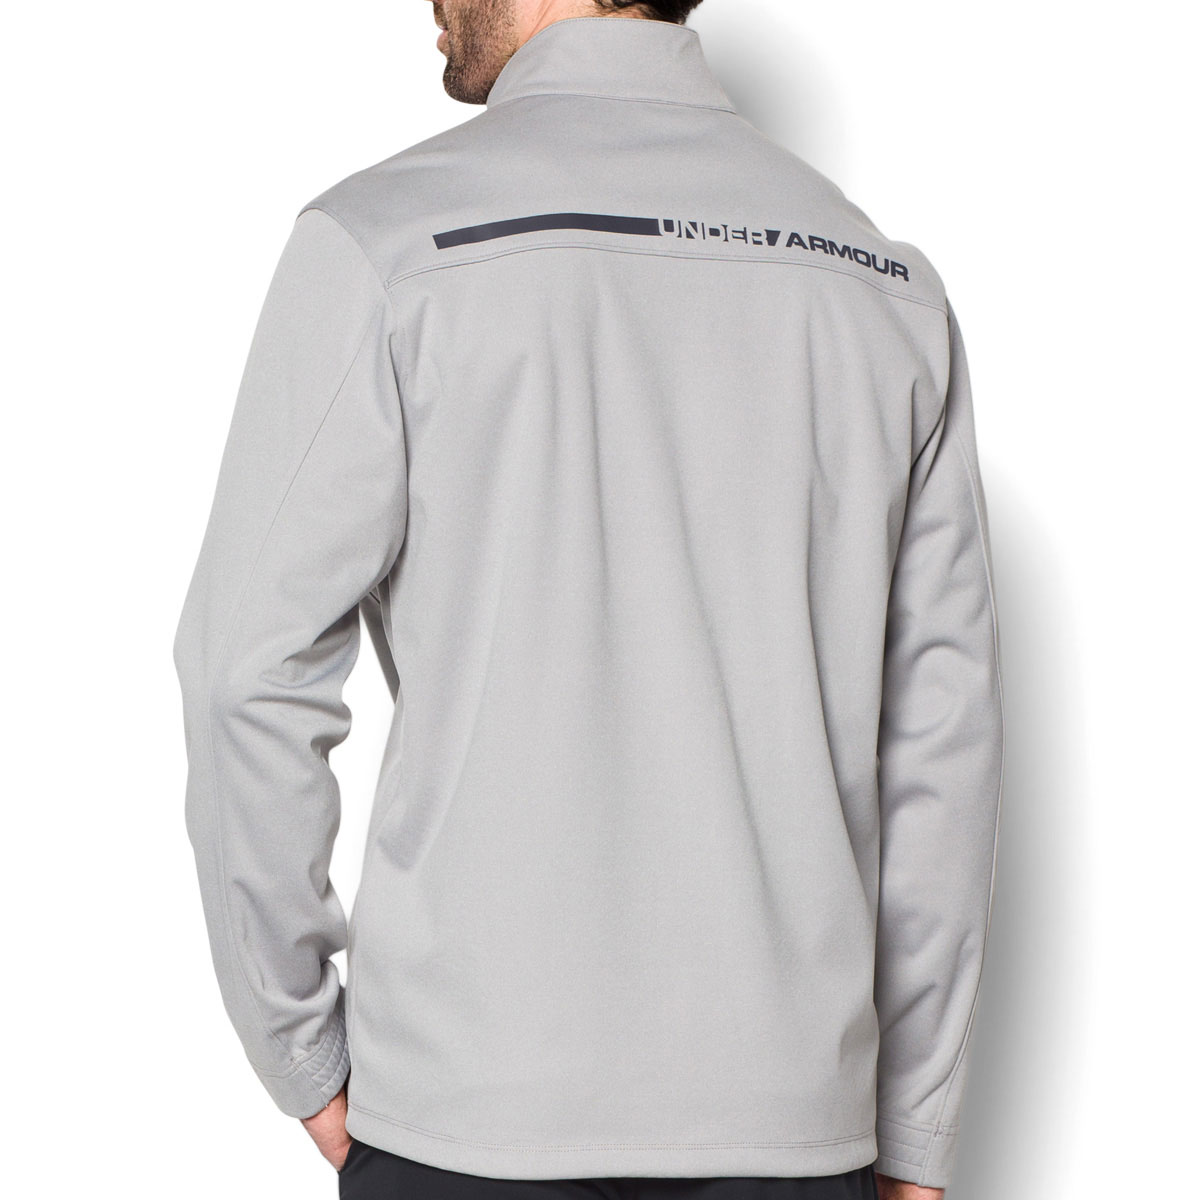 under armour jackets mens. under-armour-mens-ua-elemental-golf-jacket-coldgear- under armour jackets mens